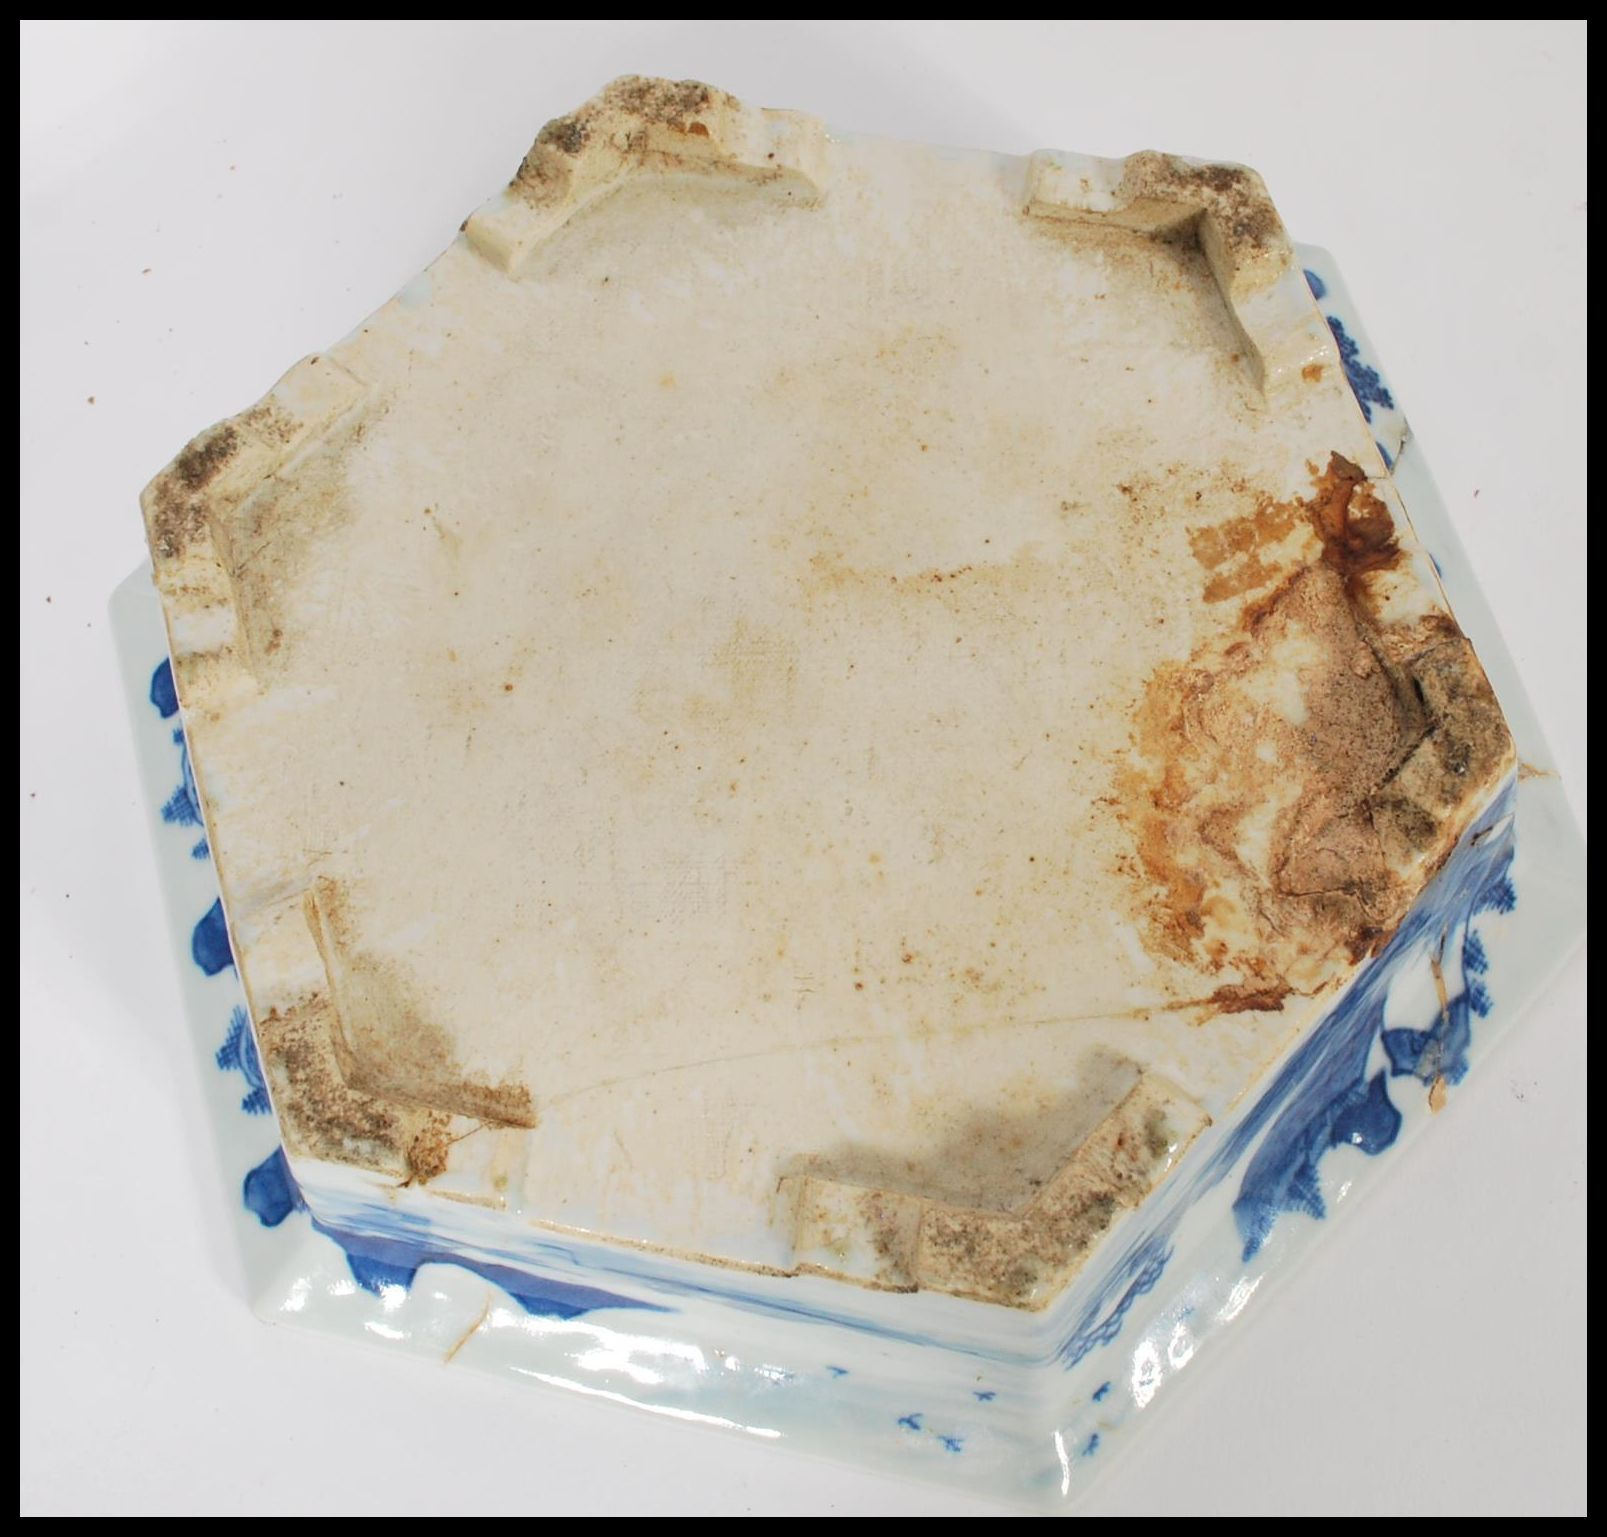 Lot 18 - An 19th century blue and white ceramic Chinese jardiniere and stand having a hexagonal shape. Hand